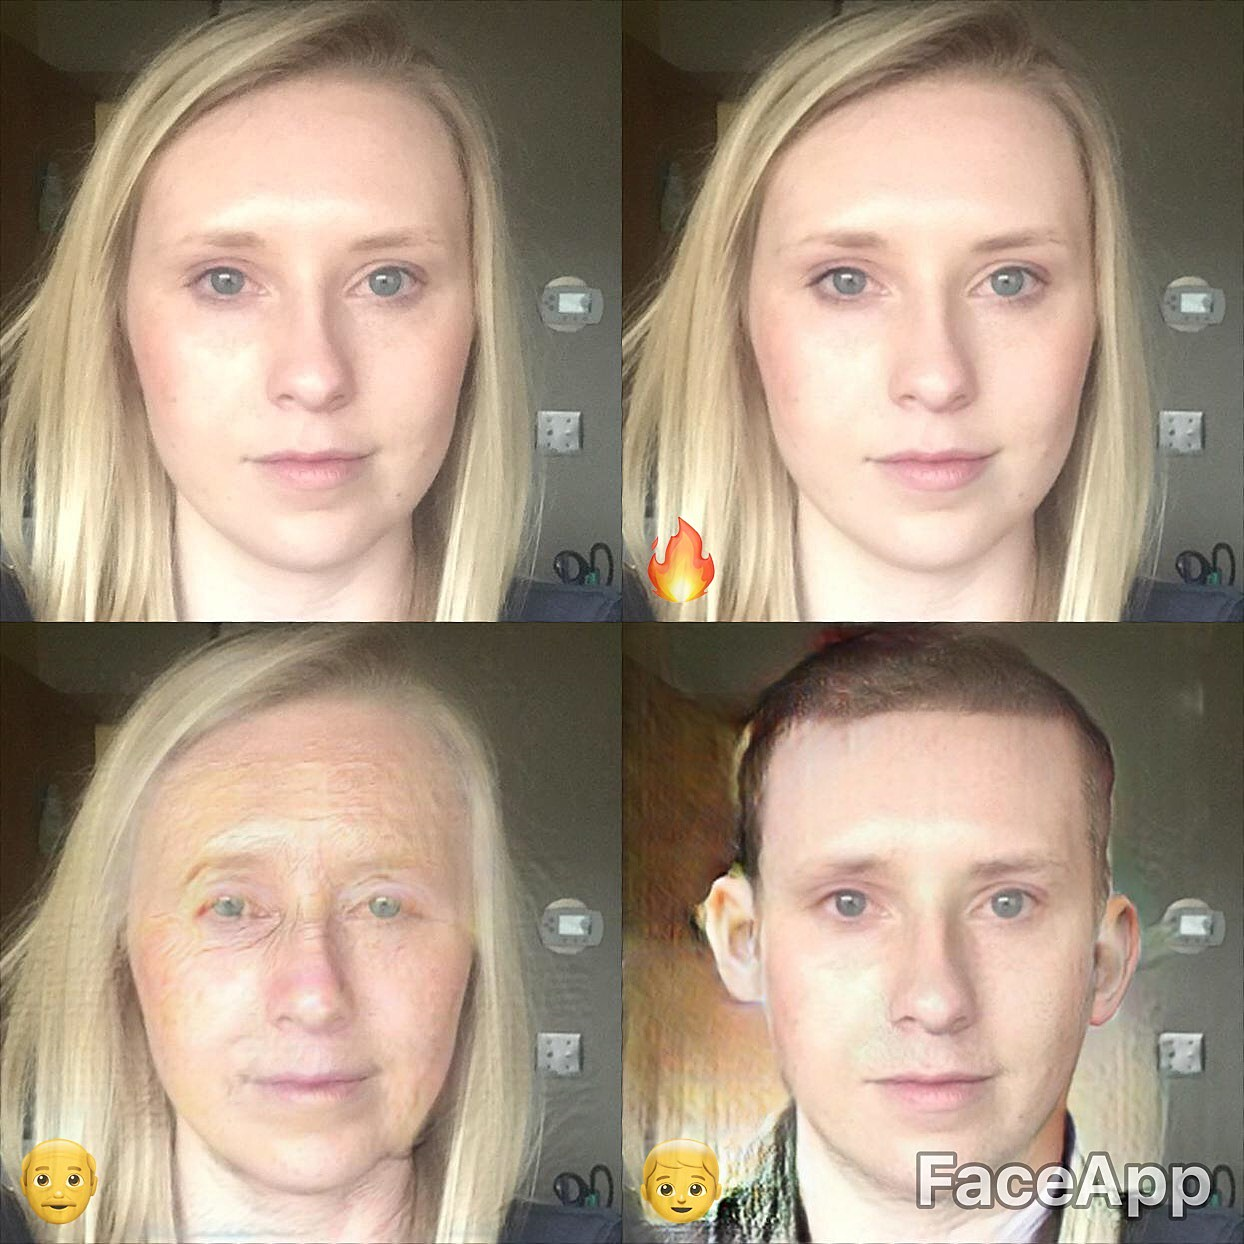 Turn your picture into opposite gender